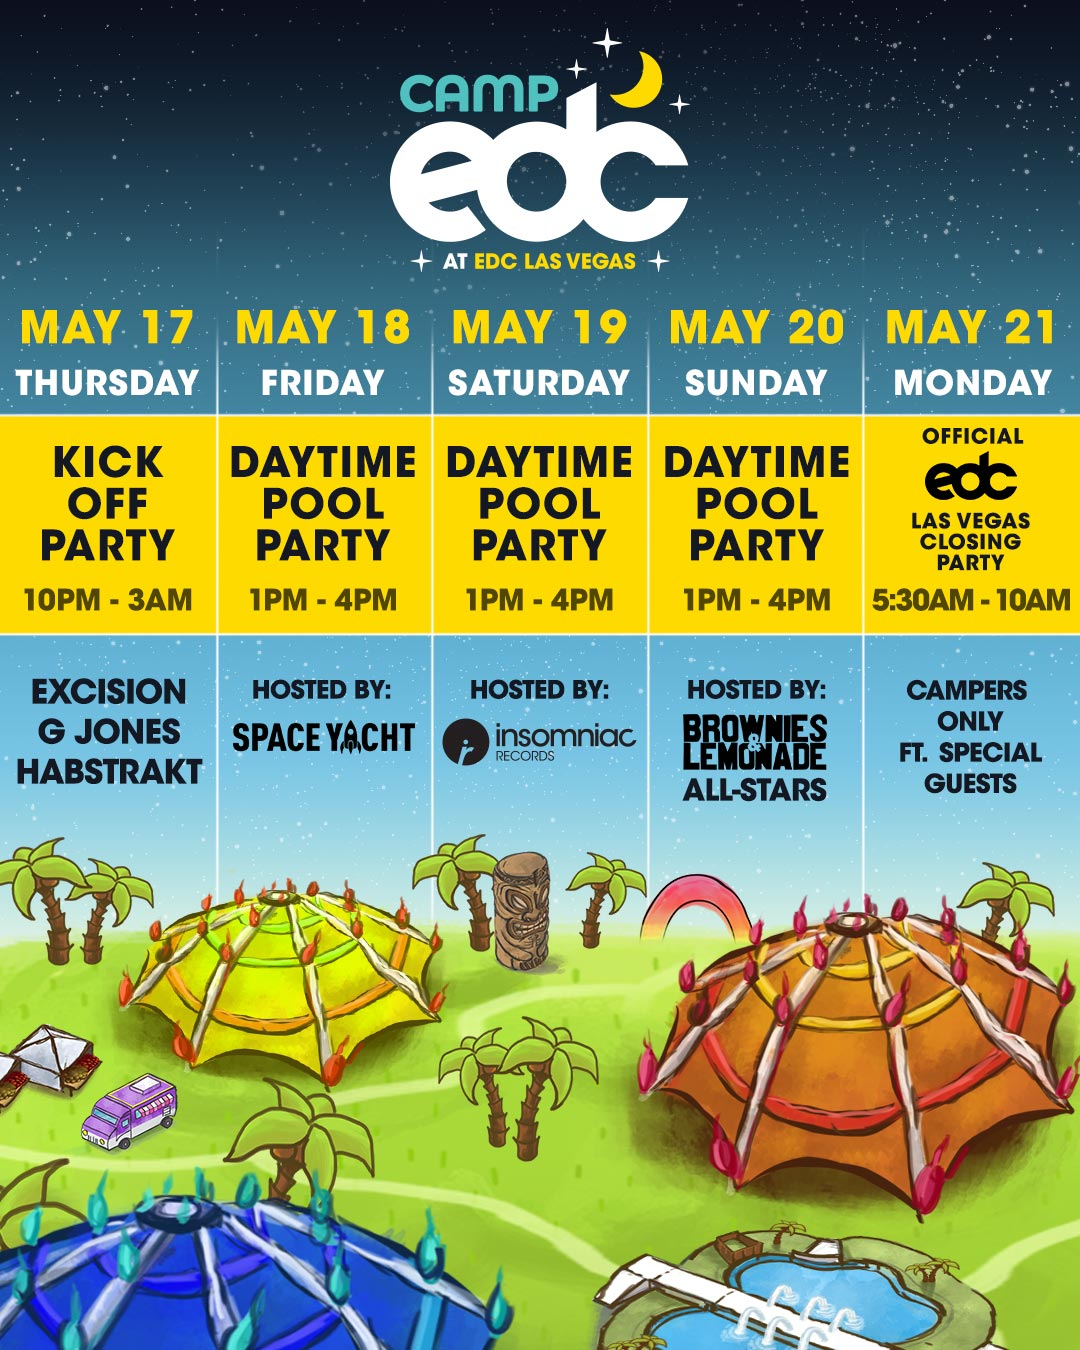 Camp EDC party schedule